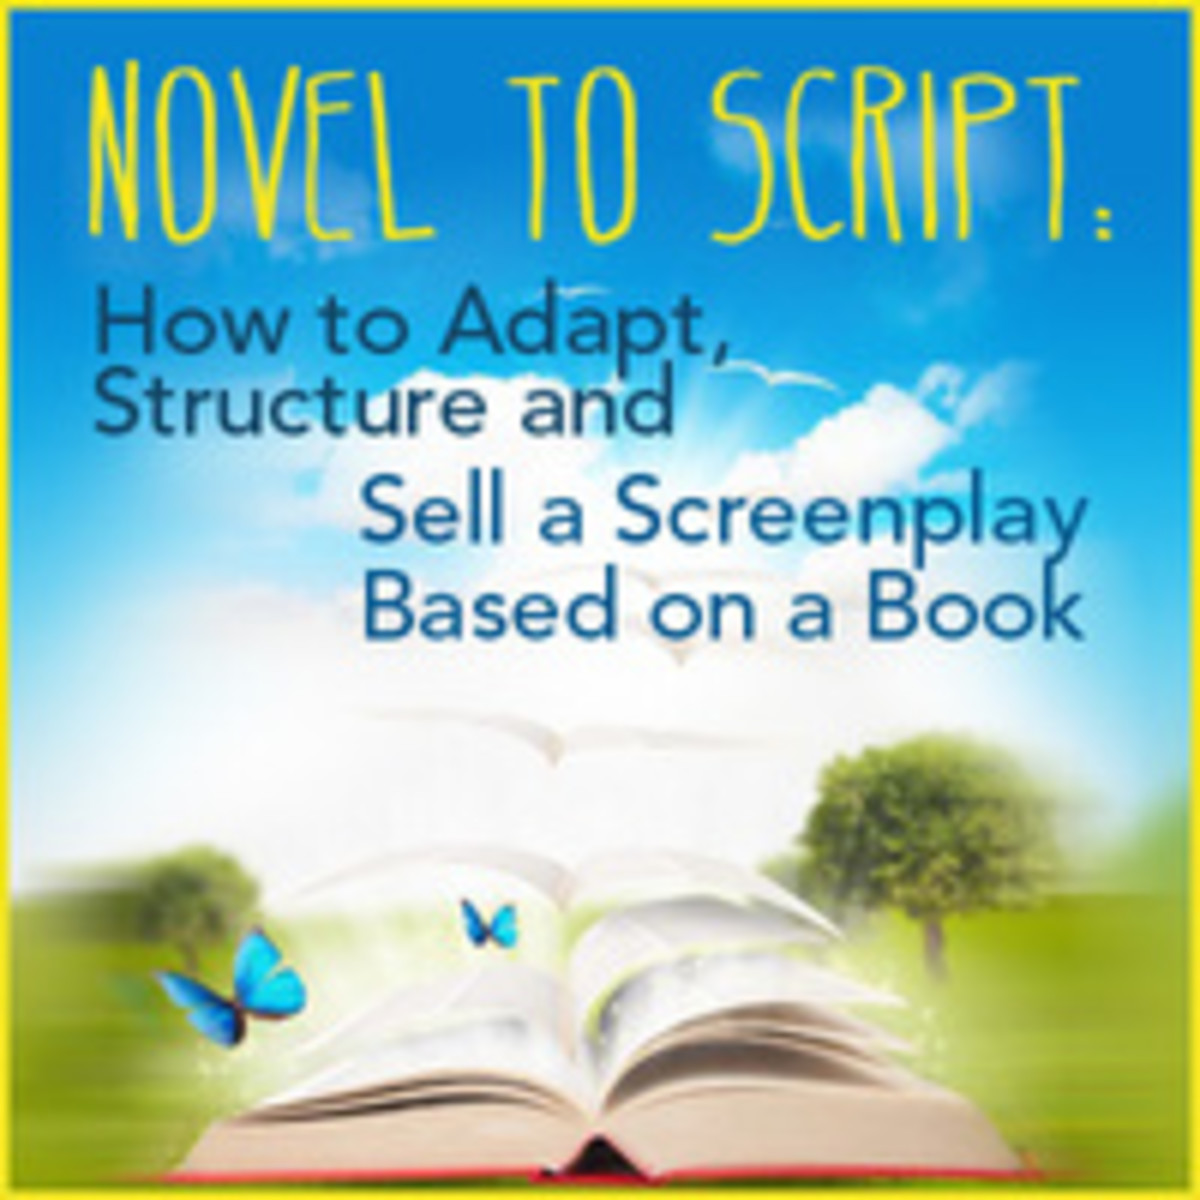 How to turn a book into a movie demystified and other helpful tips about adapting books into screenplays.